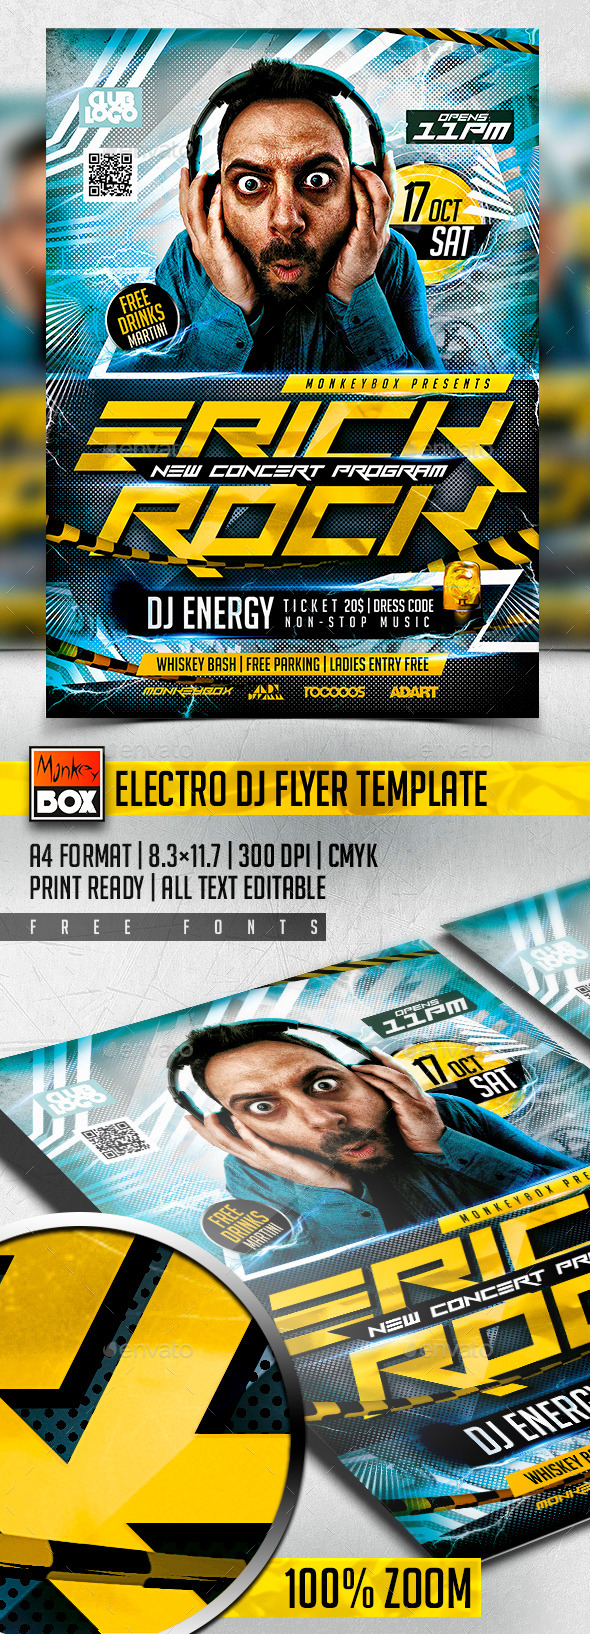 Electro Dj Flyer Template - Flyers Print Templates